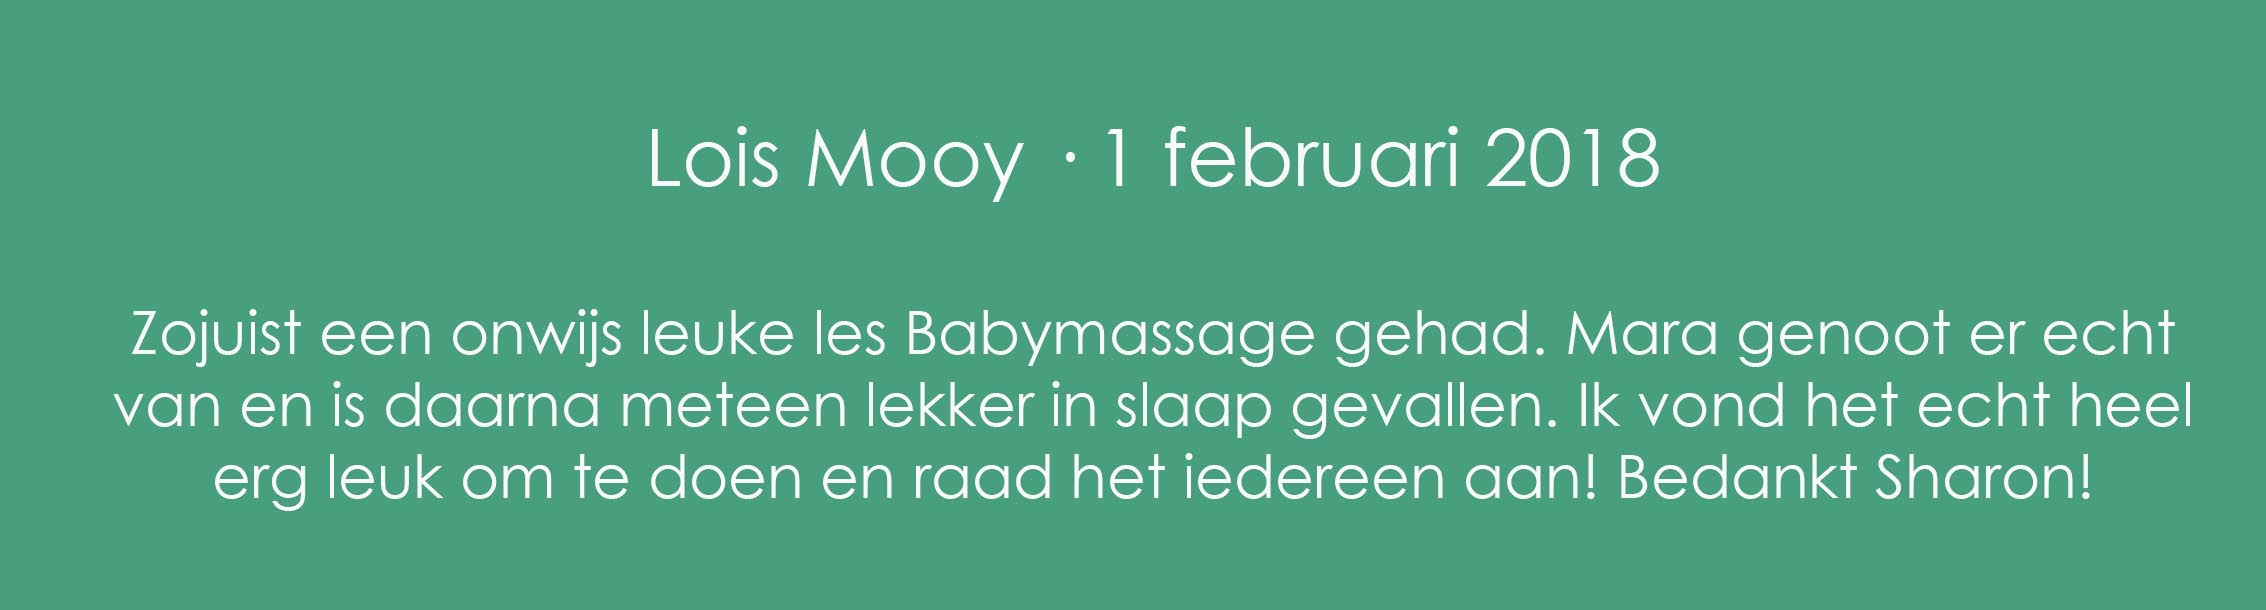 Review Babymassage Lois Mooy groen